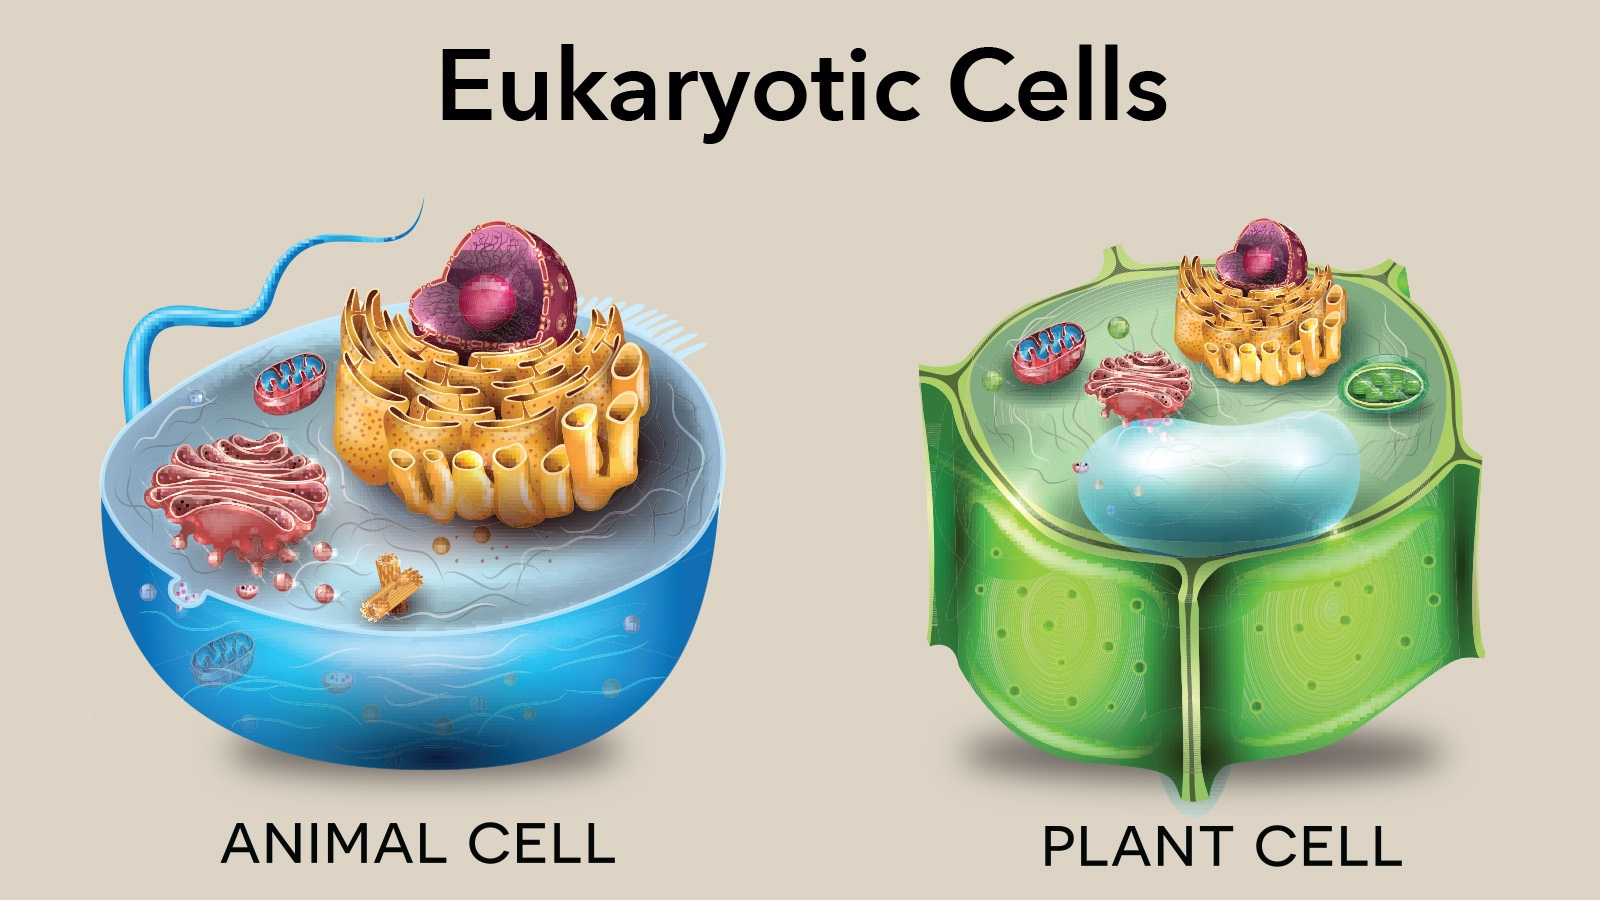 Diagram of Animal and Plant Eukaryotic Cells